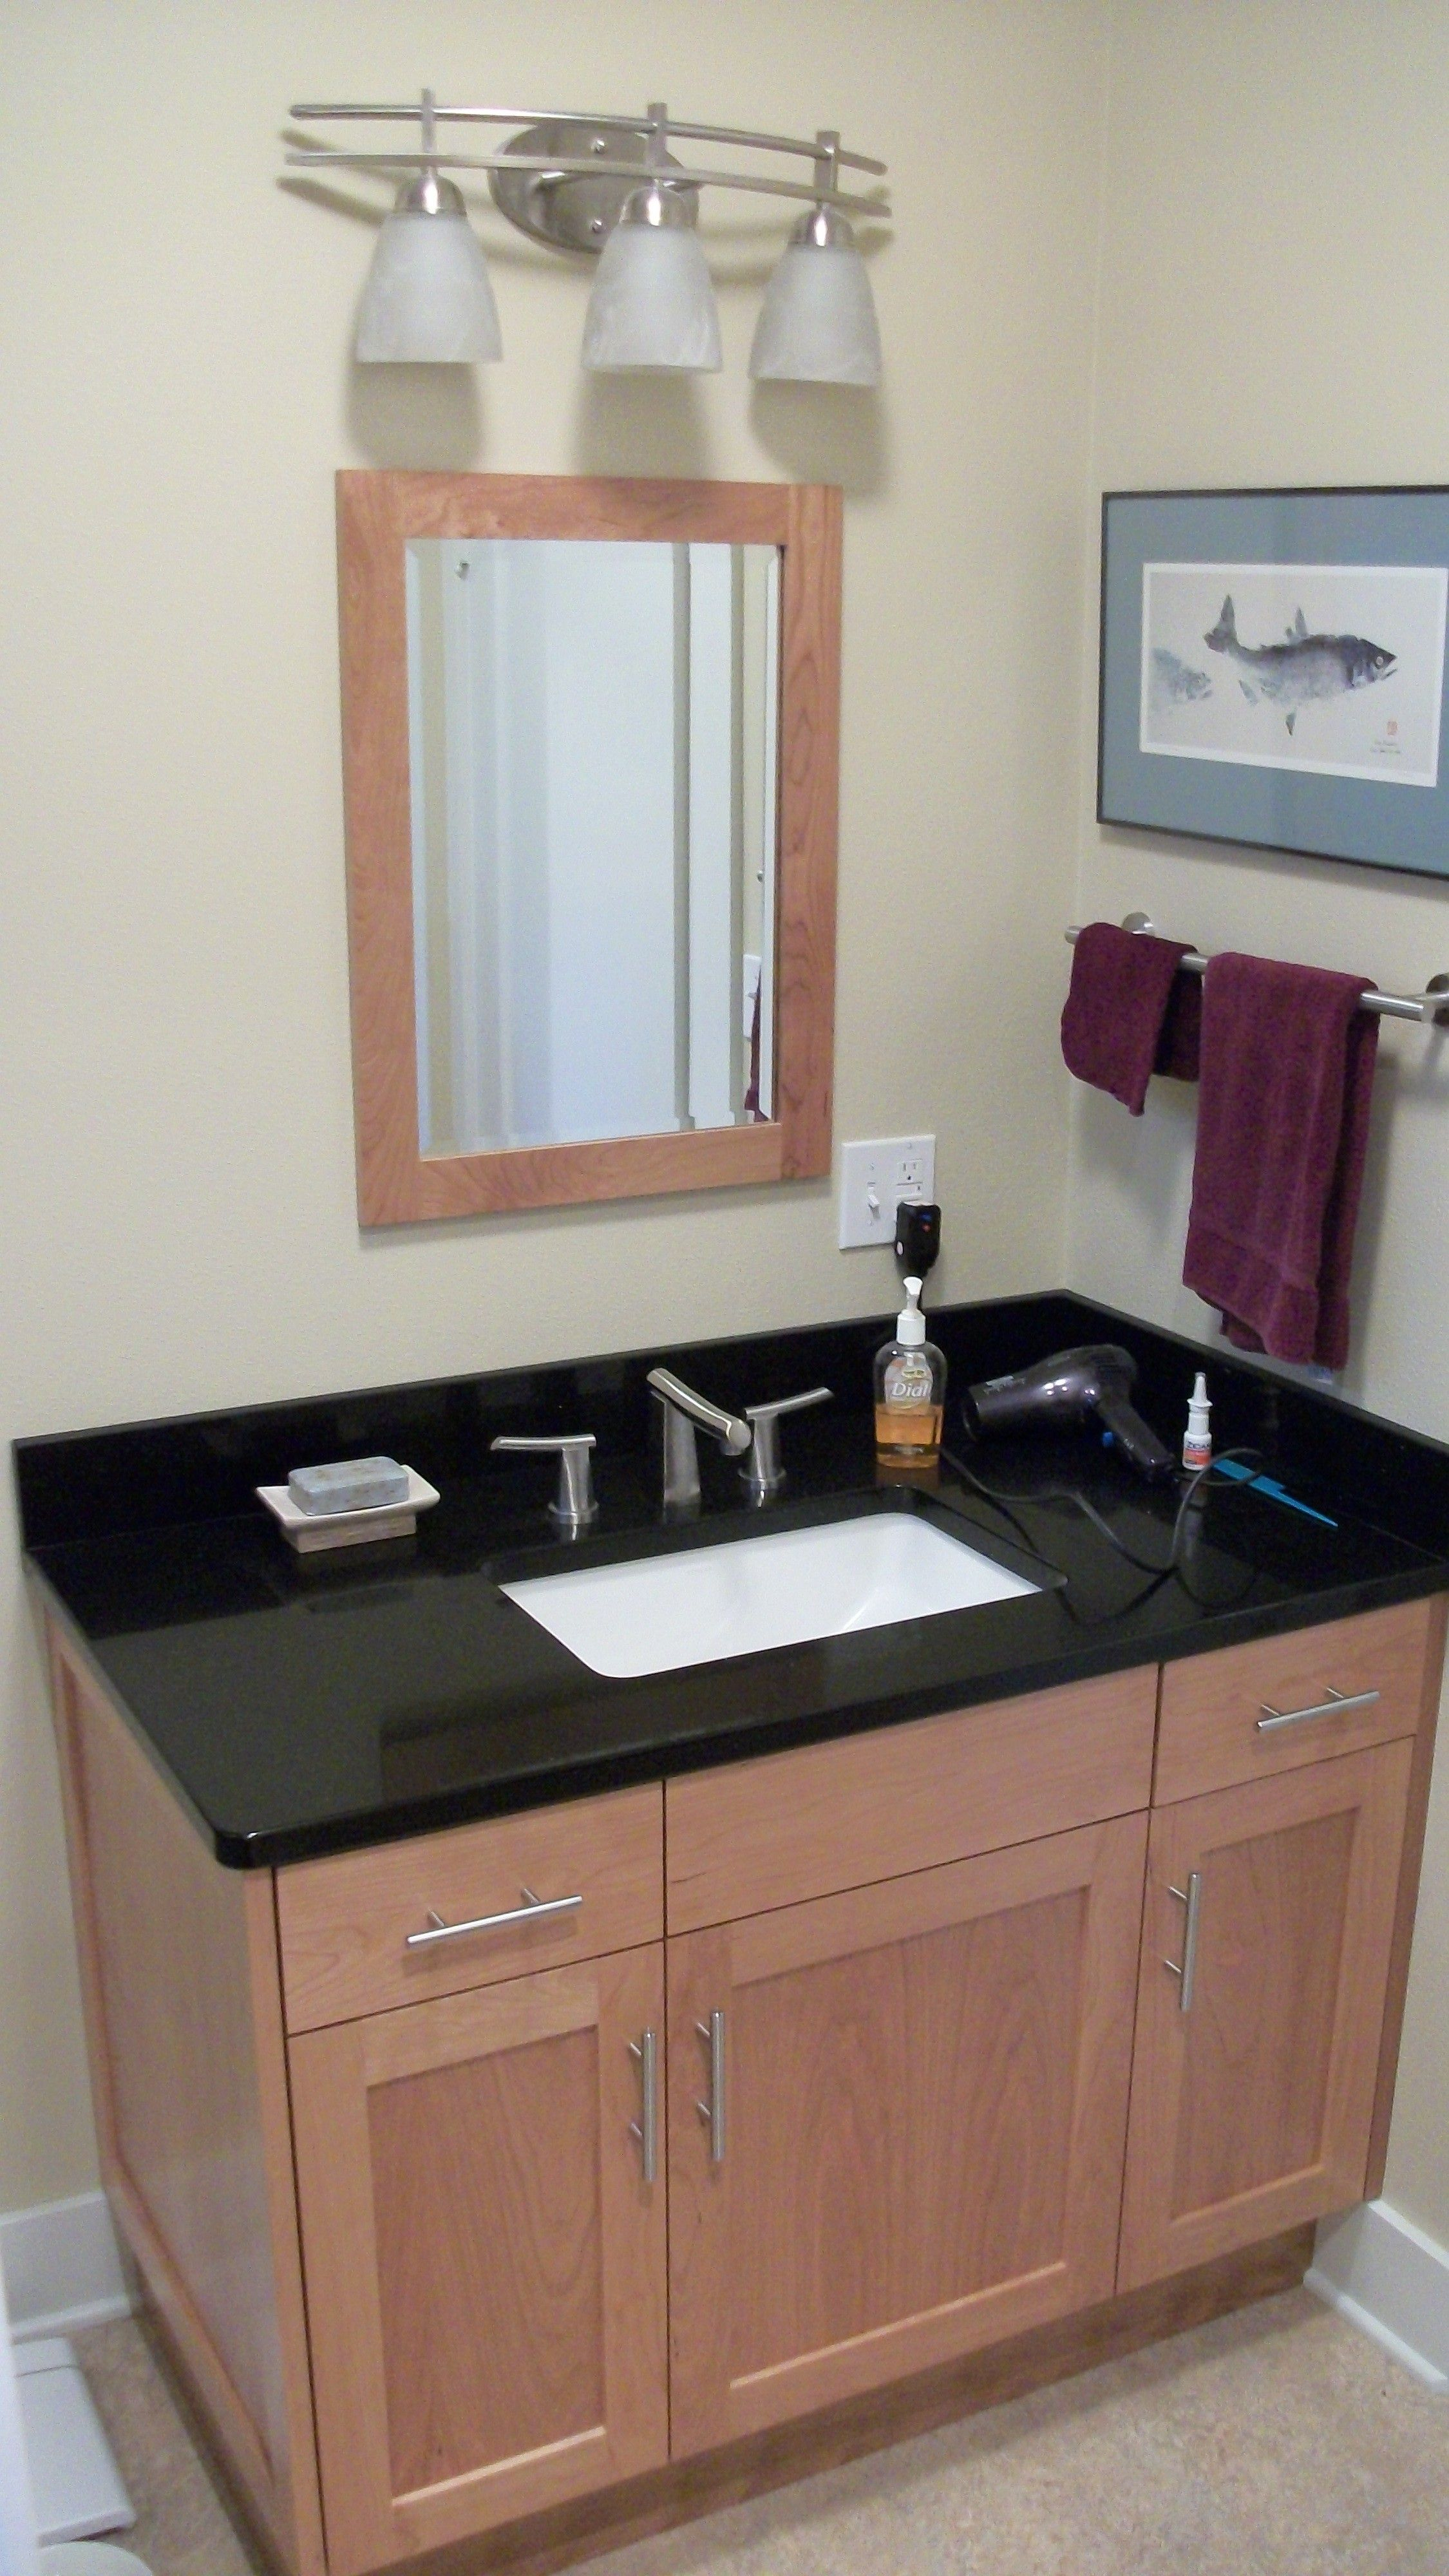 Designer Vanity Units For Bathroom Beauteous Pinmarcy Vale On Bathroom Remodel Ideas  Pinterest Review